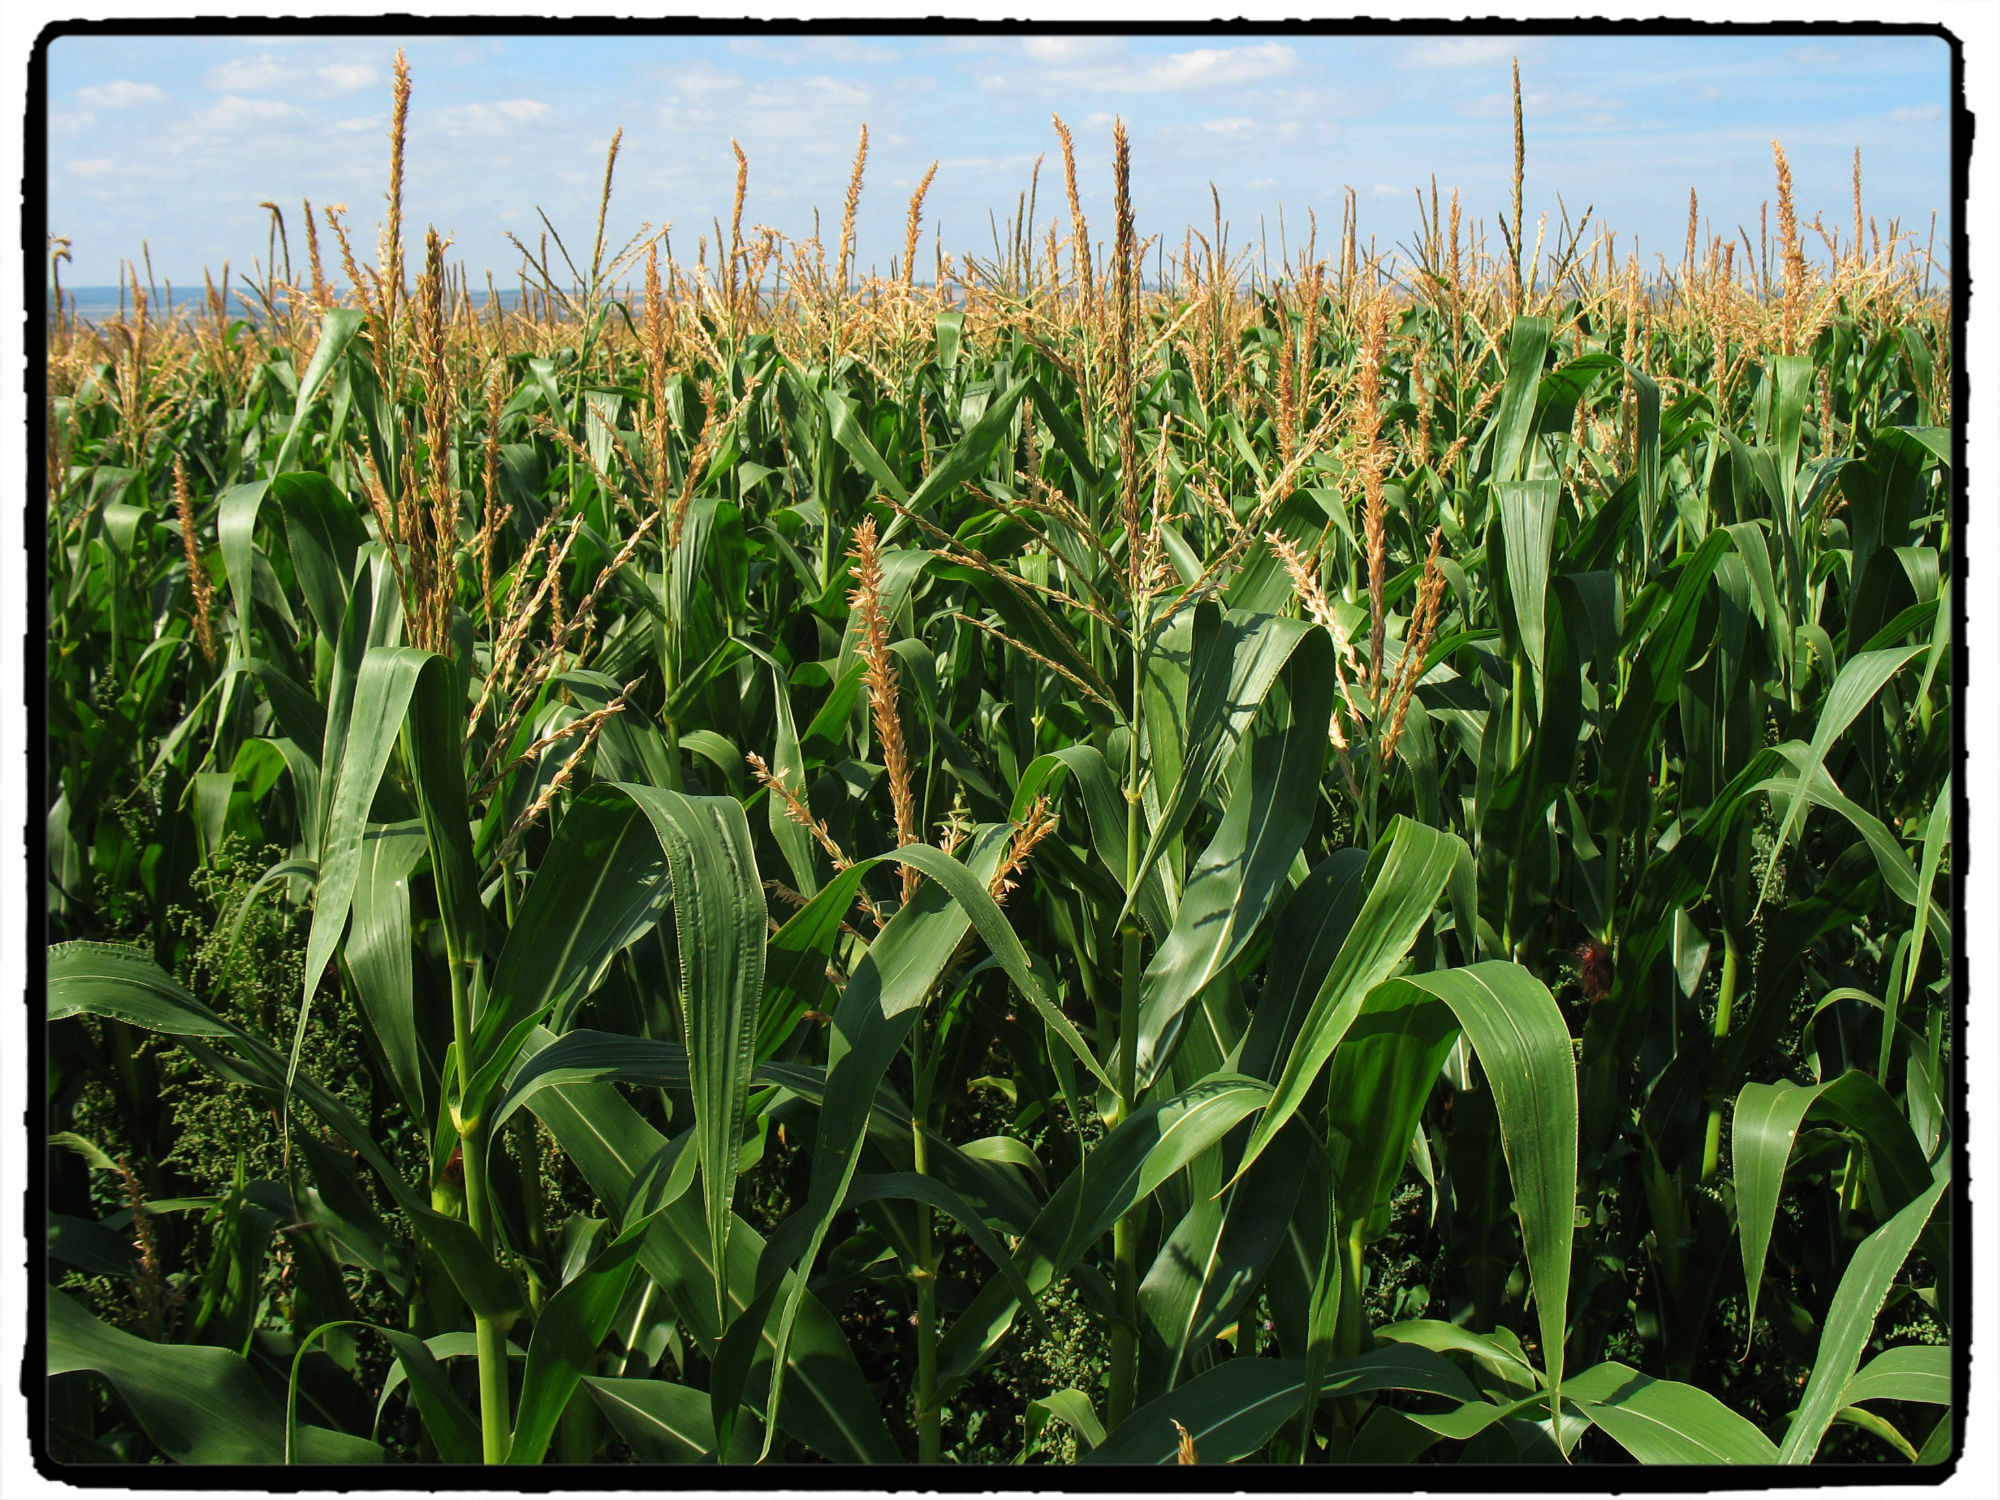 gmocornfieldfinal GMO: Boon, Bust or Blight? (2 of 3)